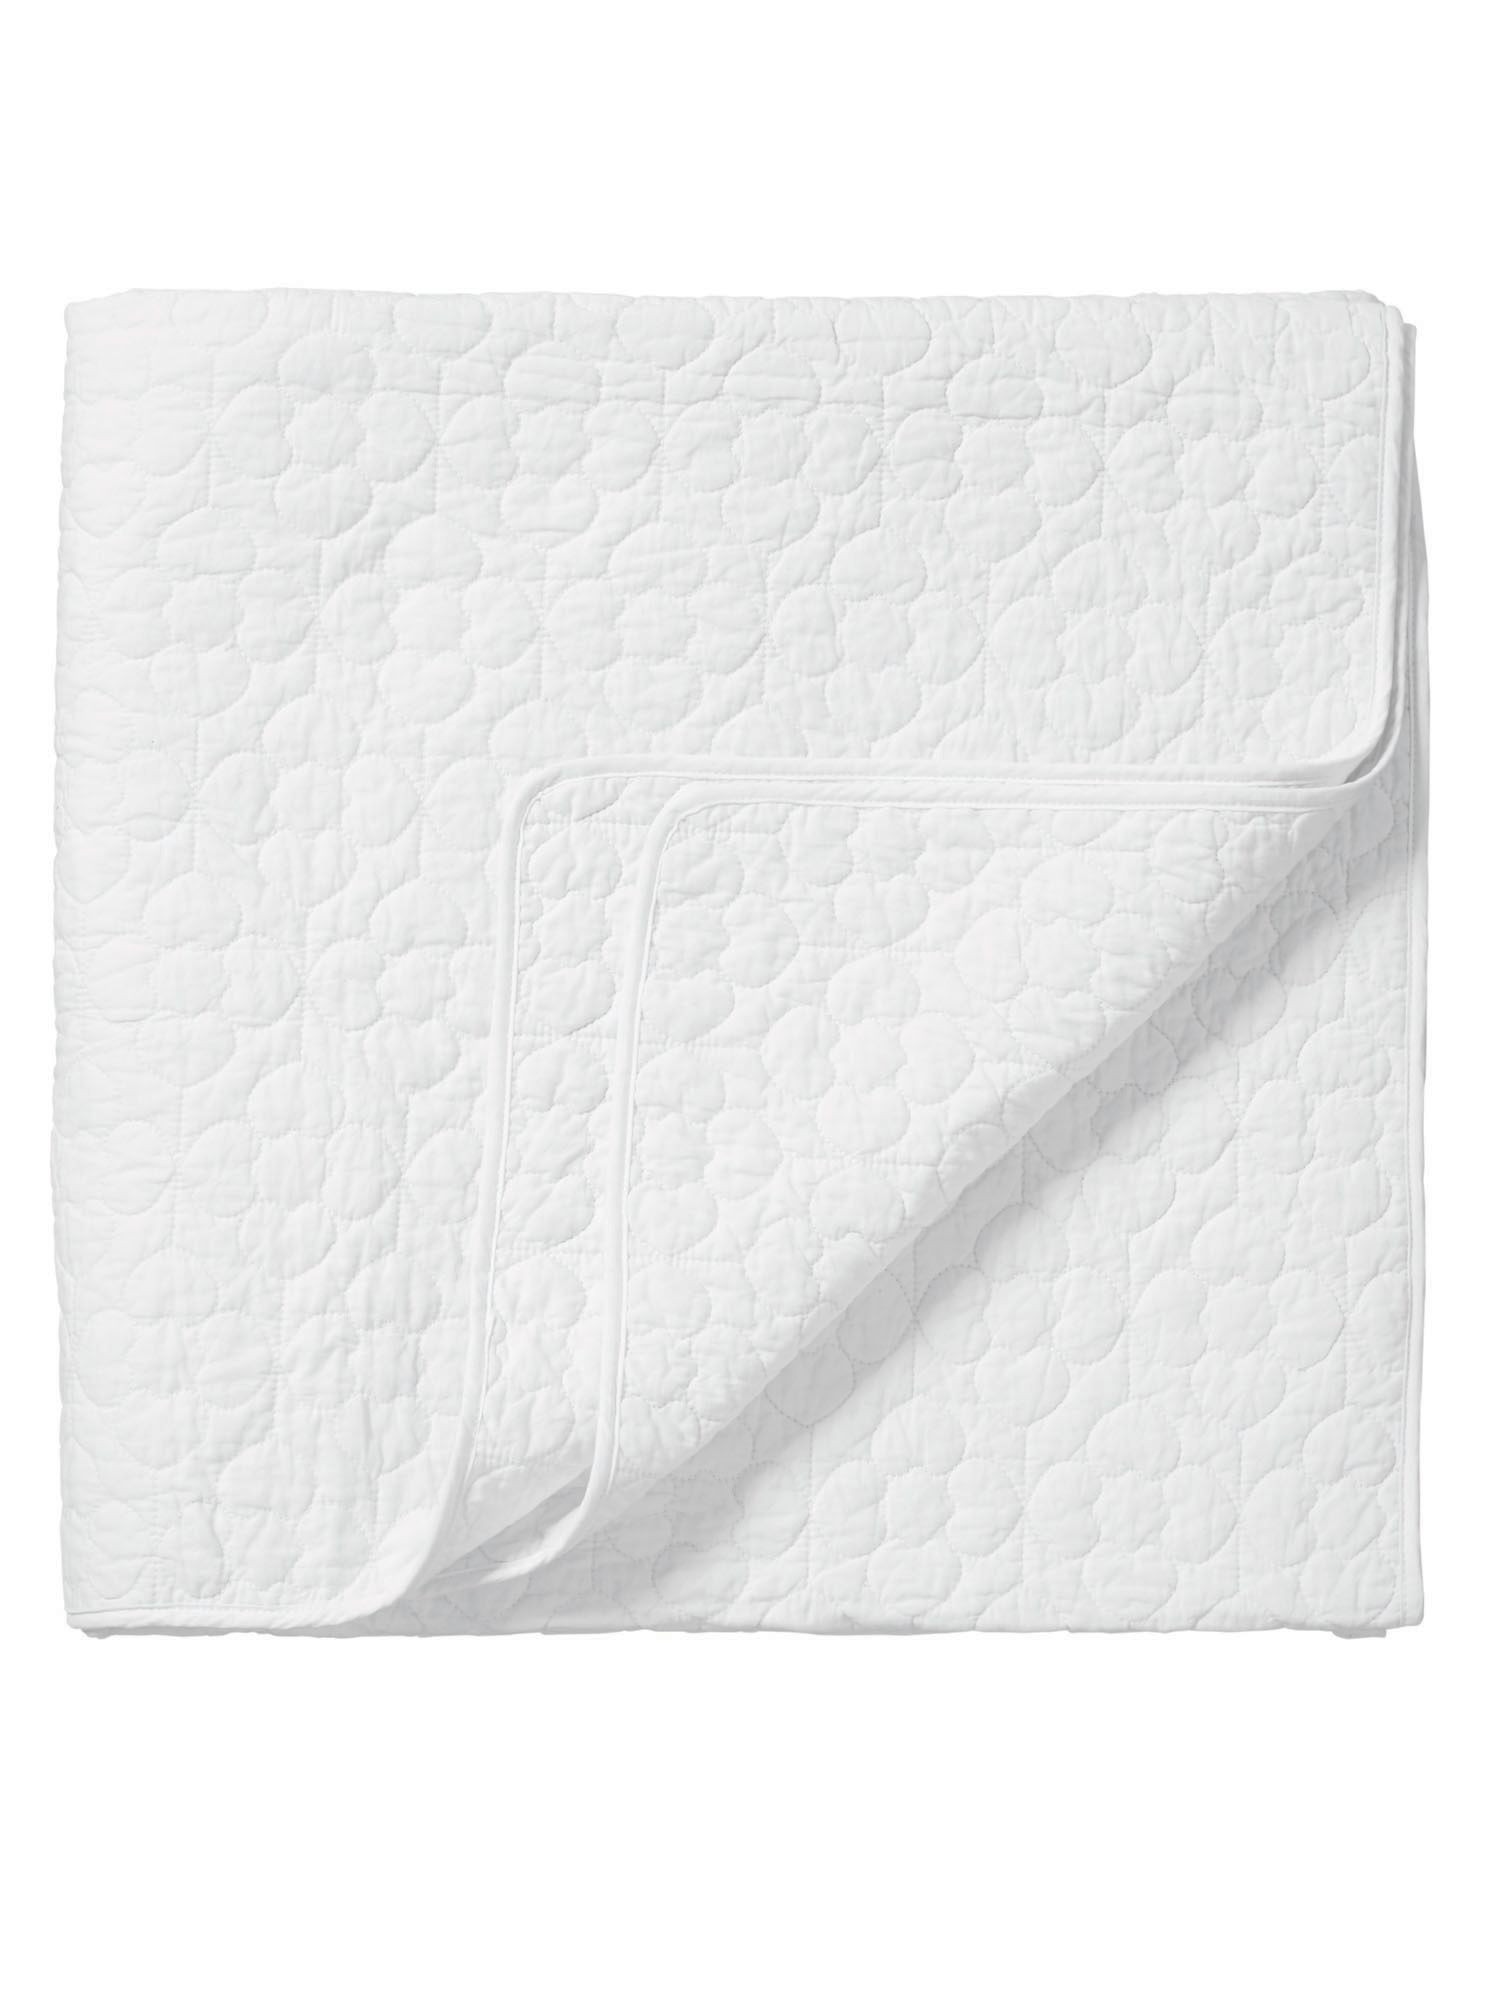 Bliss throw 170x220cm white